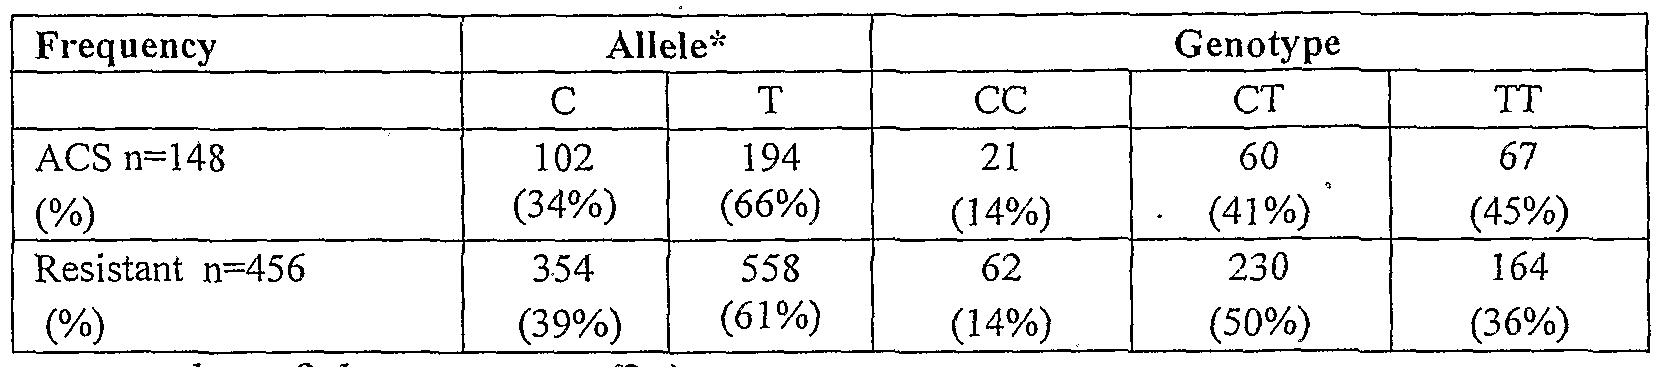 WO2008075977A2 - Methods and compositions for the assessment of